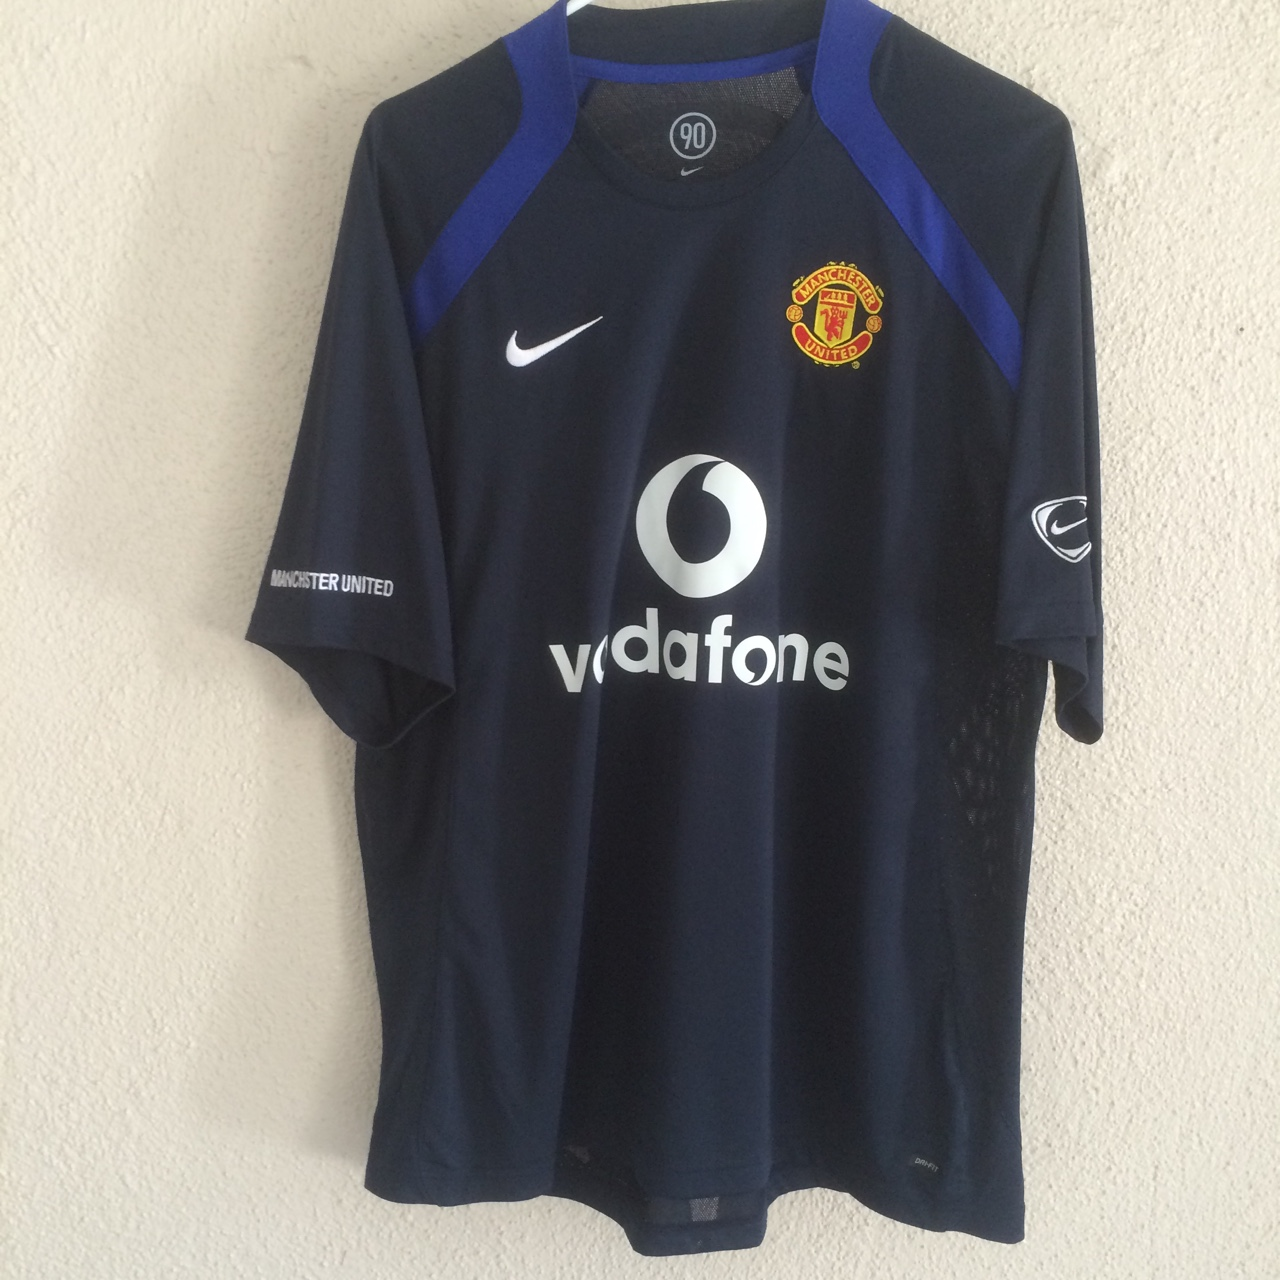 best service 725e9 7065a Total 90 Manchester United Jersey by Nike. Size... - Depop